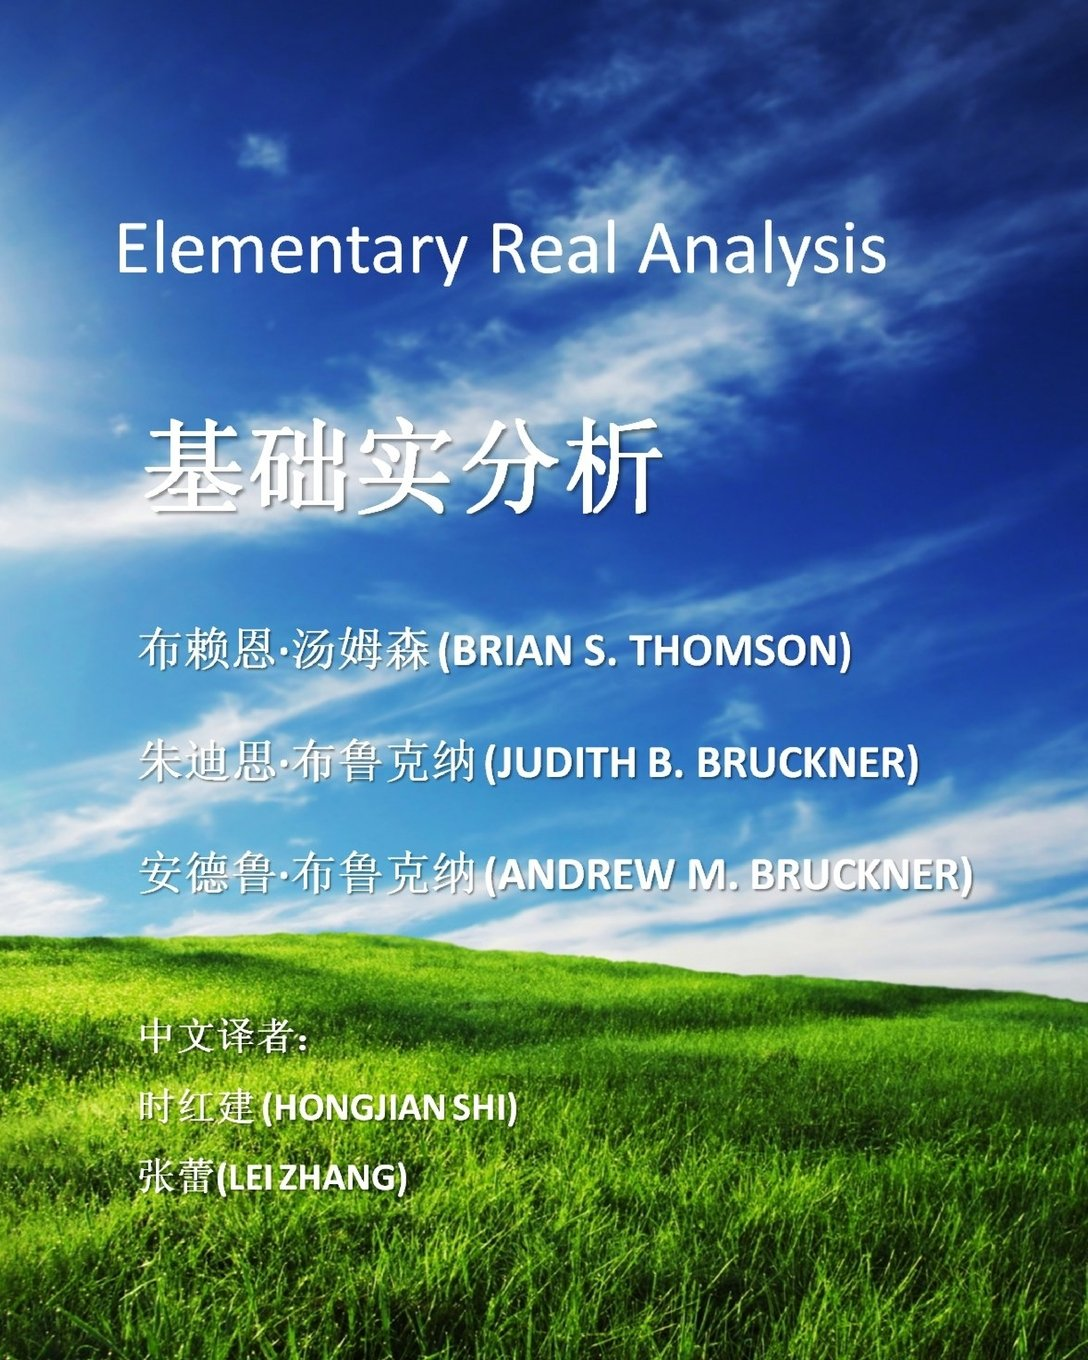 Elementary Real Analysis: Chinese Language Version (Chinese Edition